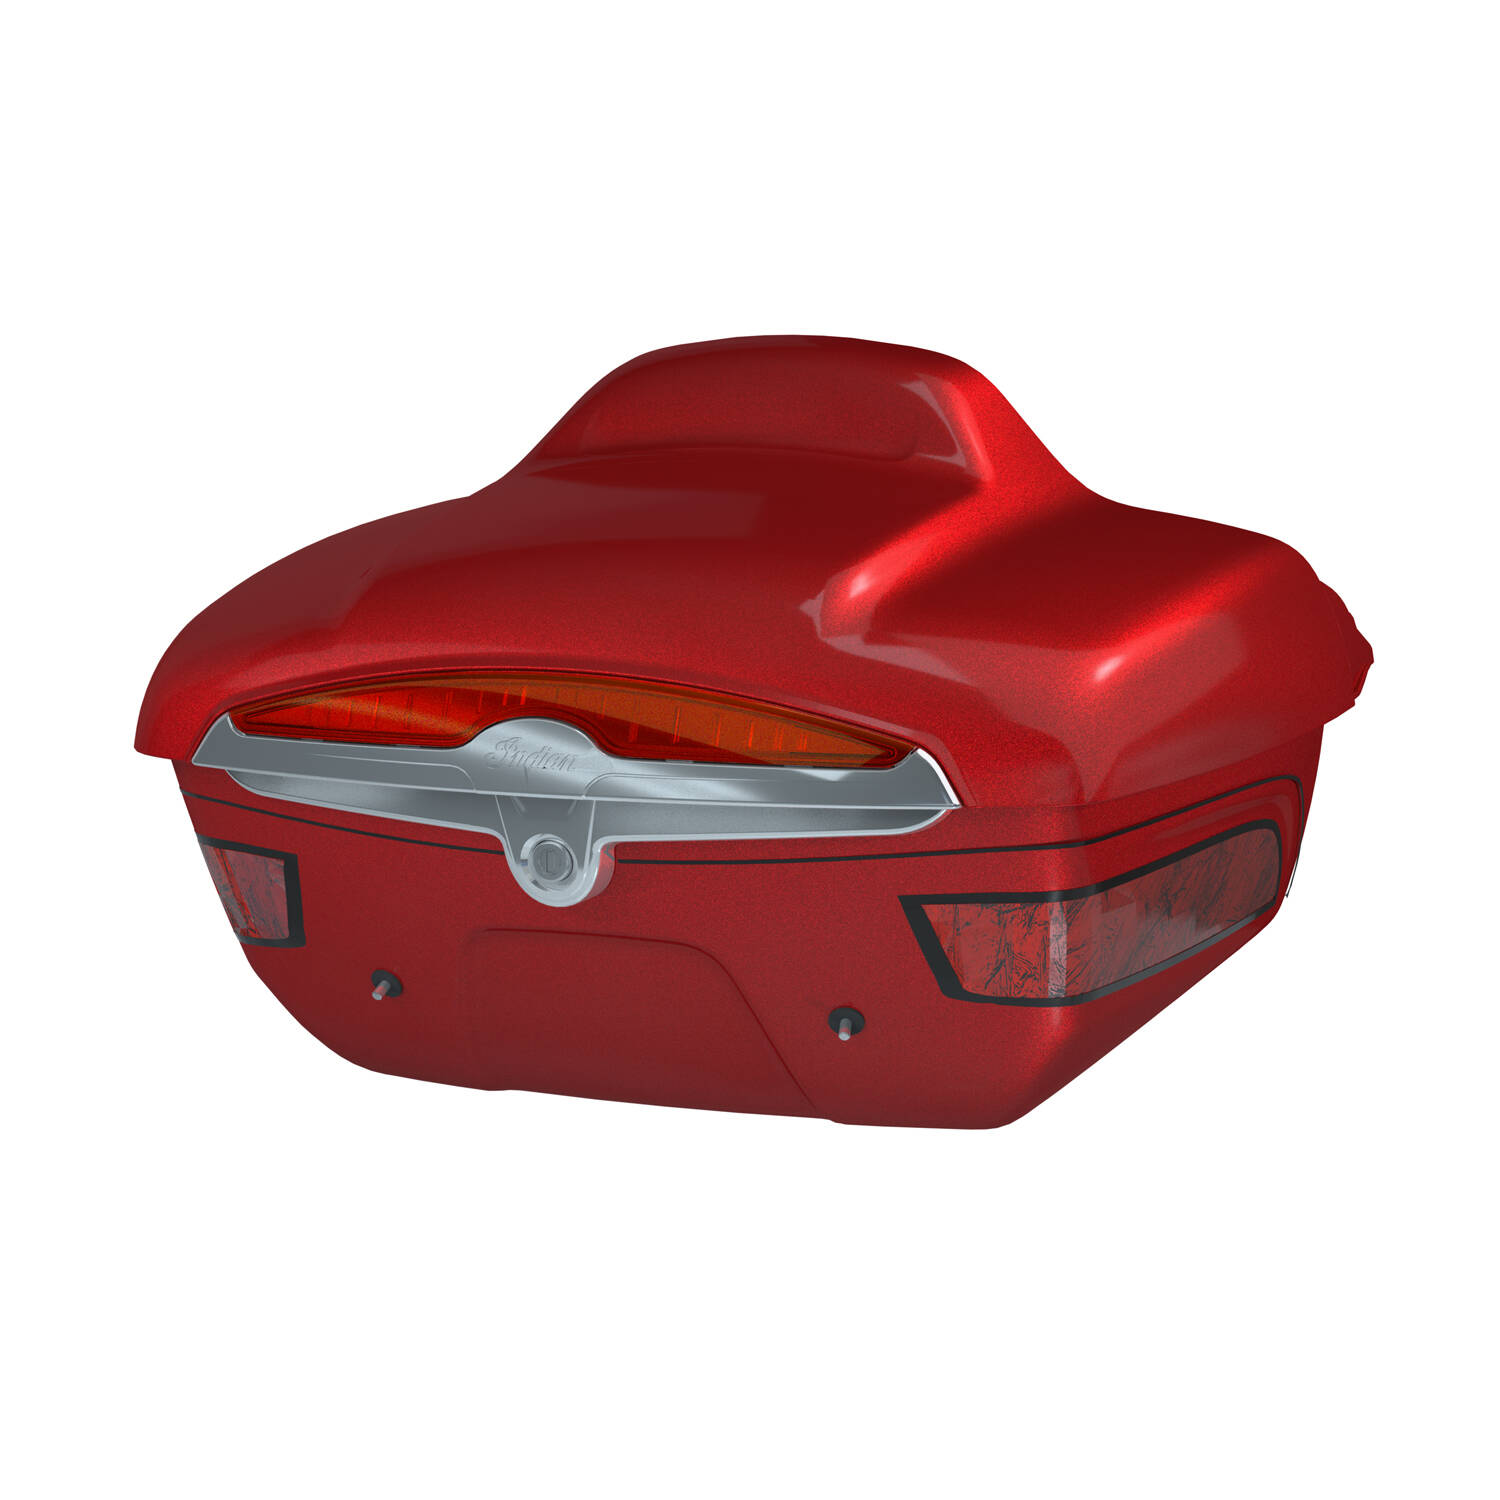 Quick-Release Lockable Trunk with Taillight, Red Candy